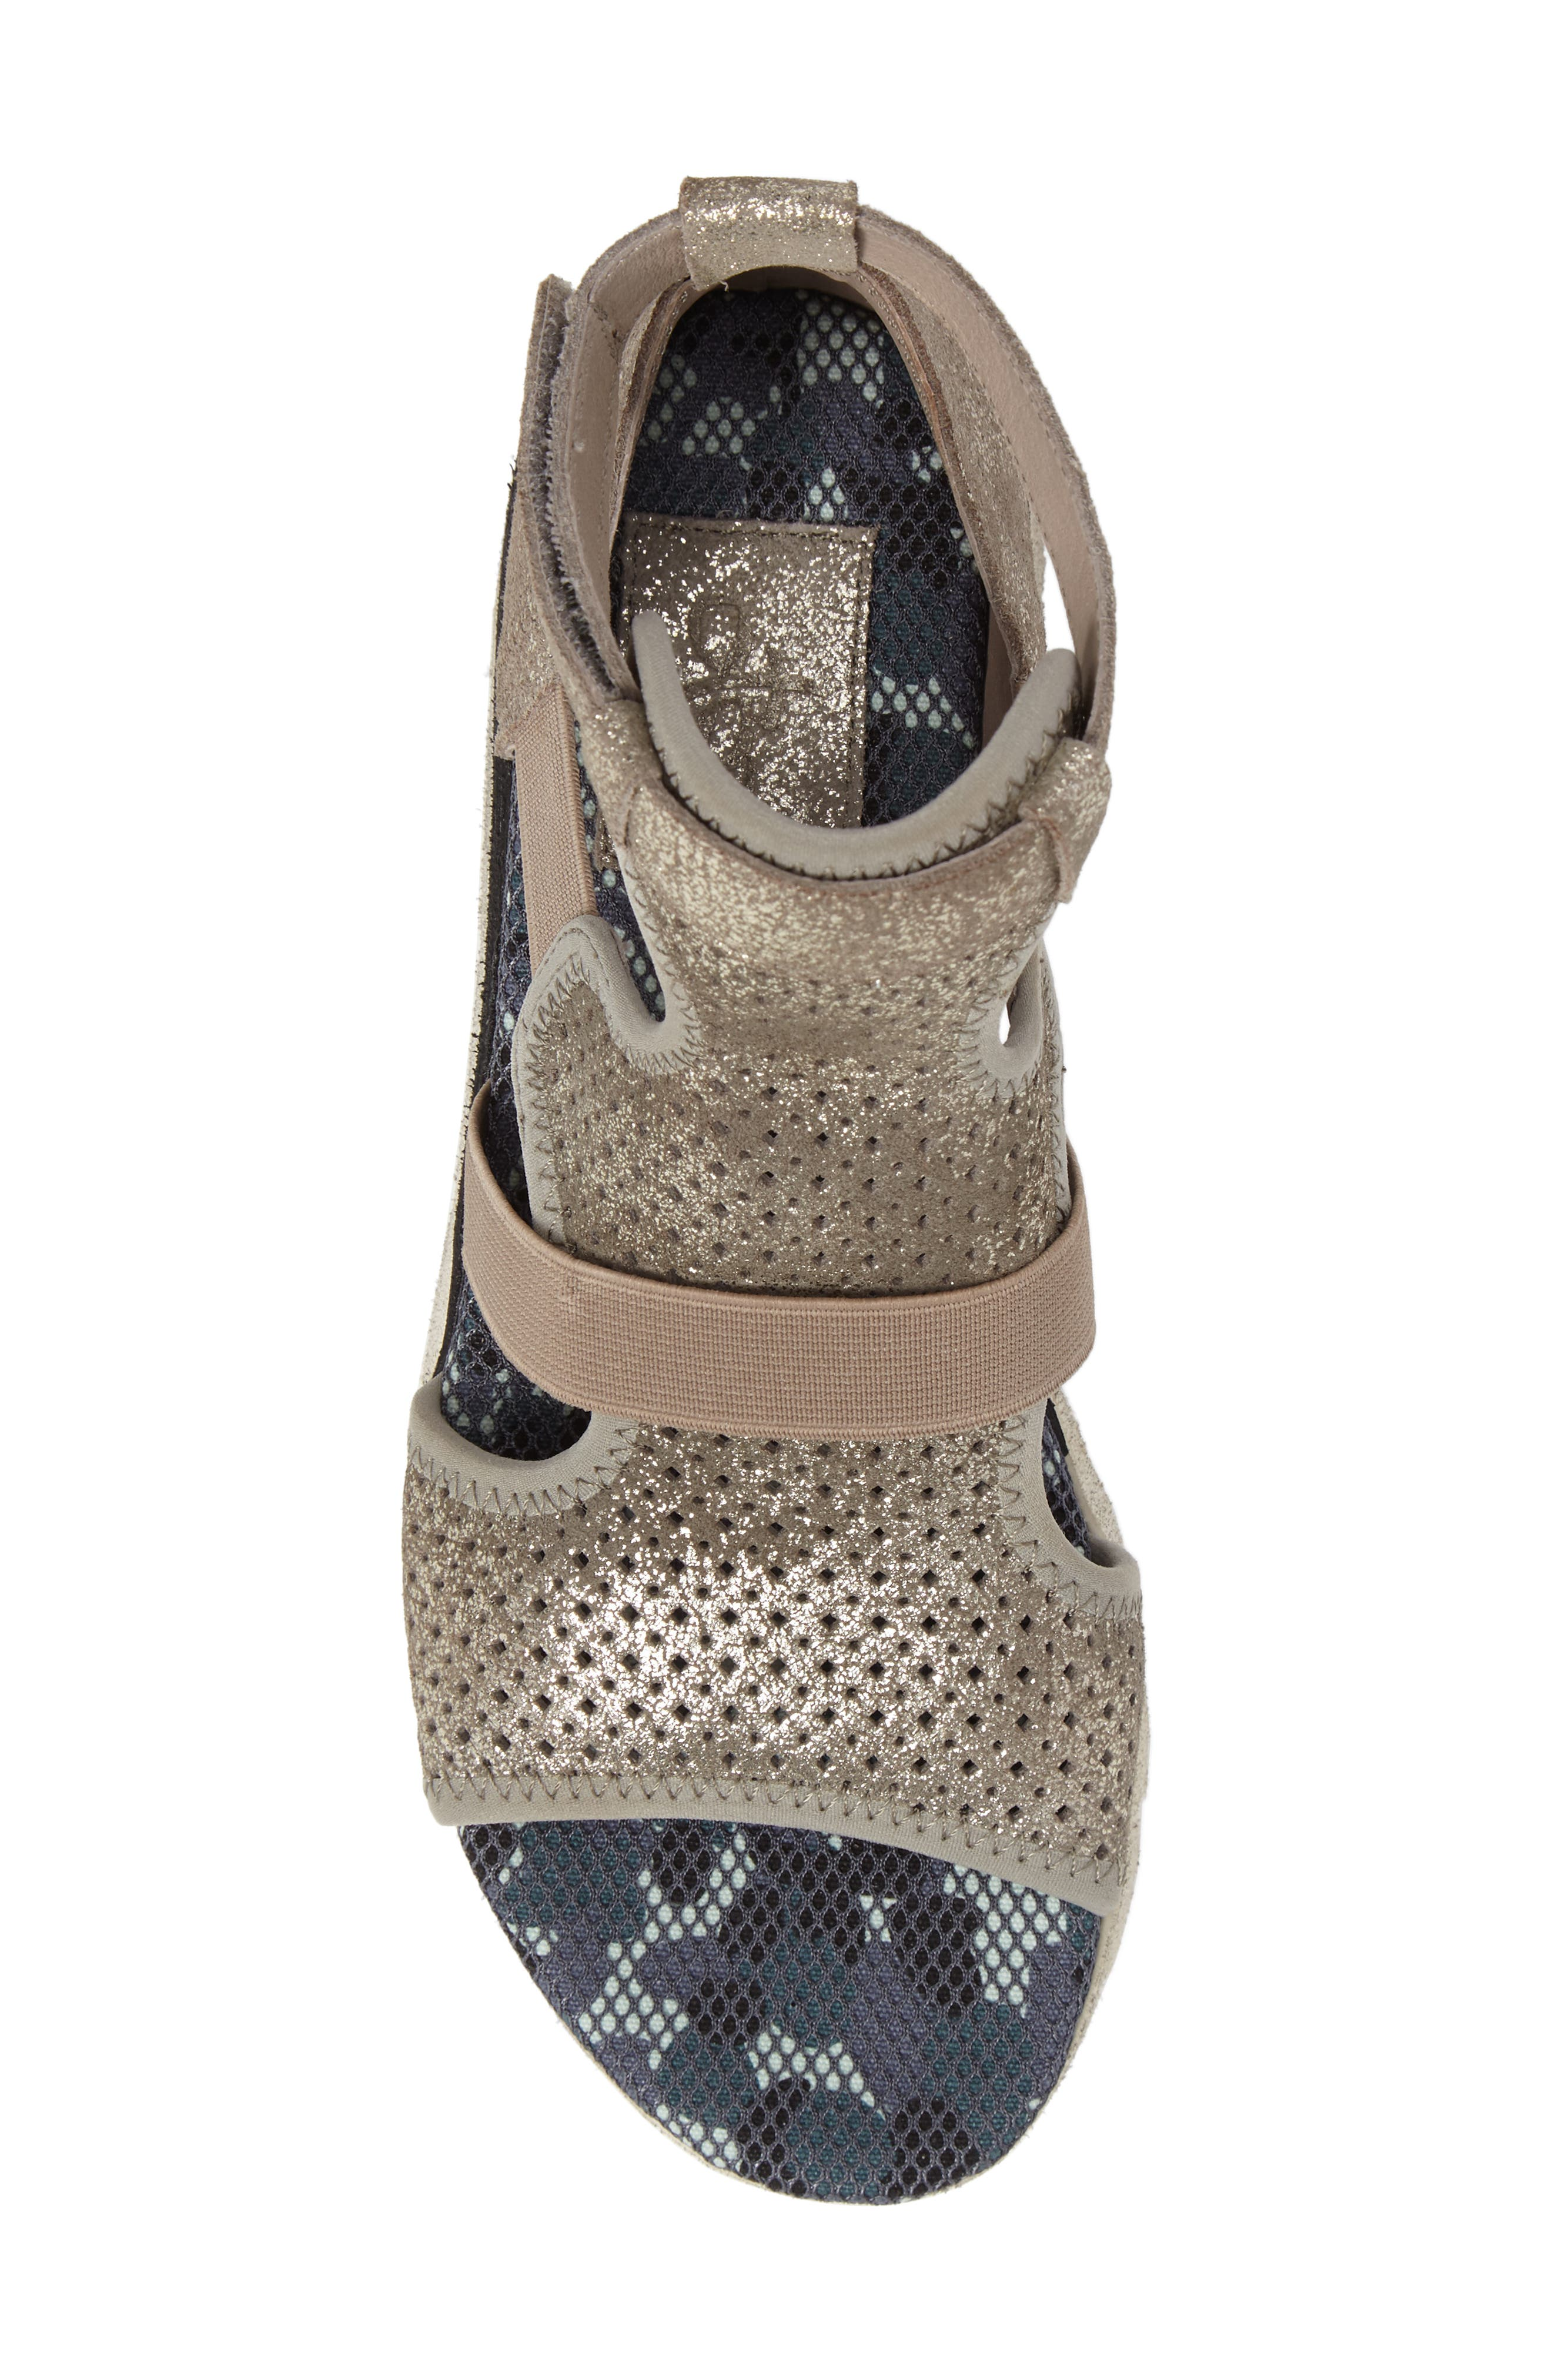 Astro Perforated Gladiator Sandal,                             Alternate thumbnail 14, color,